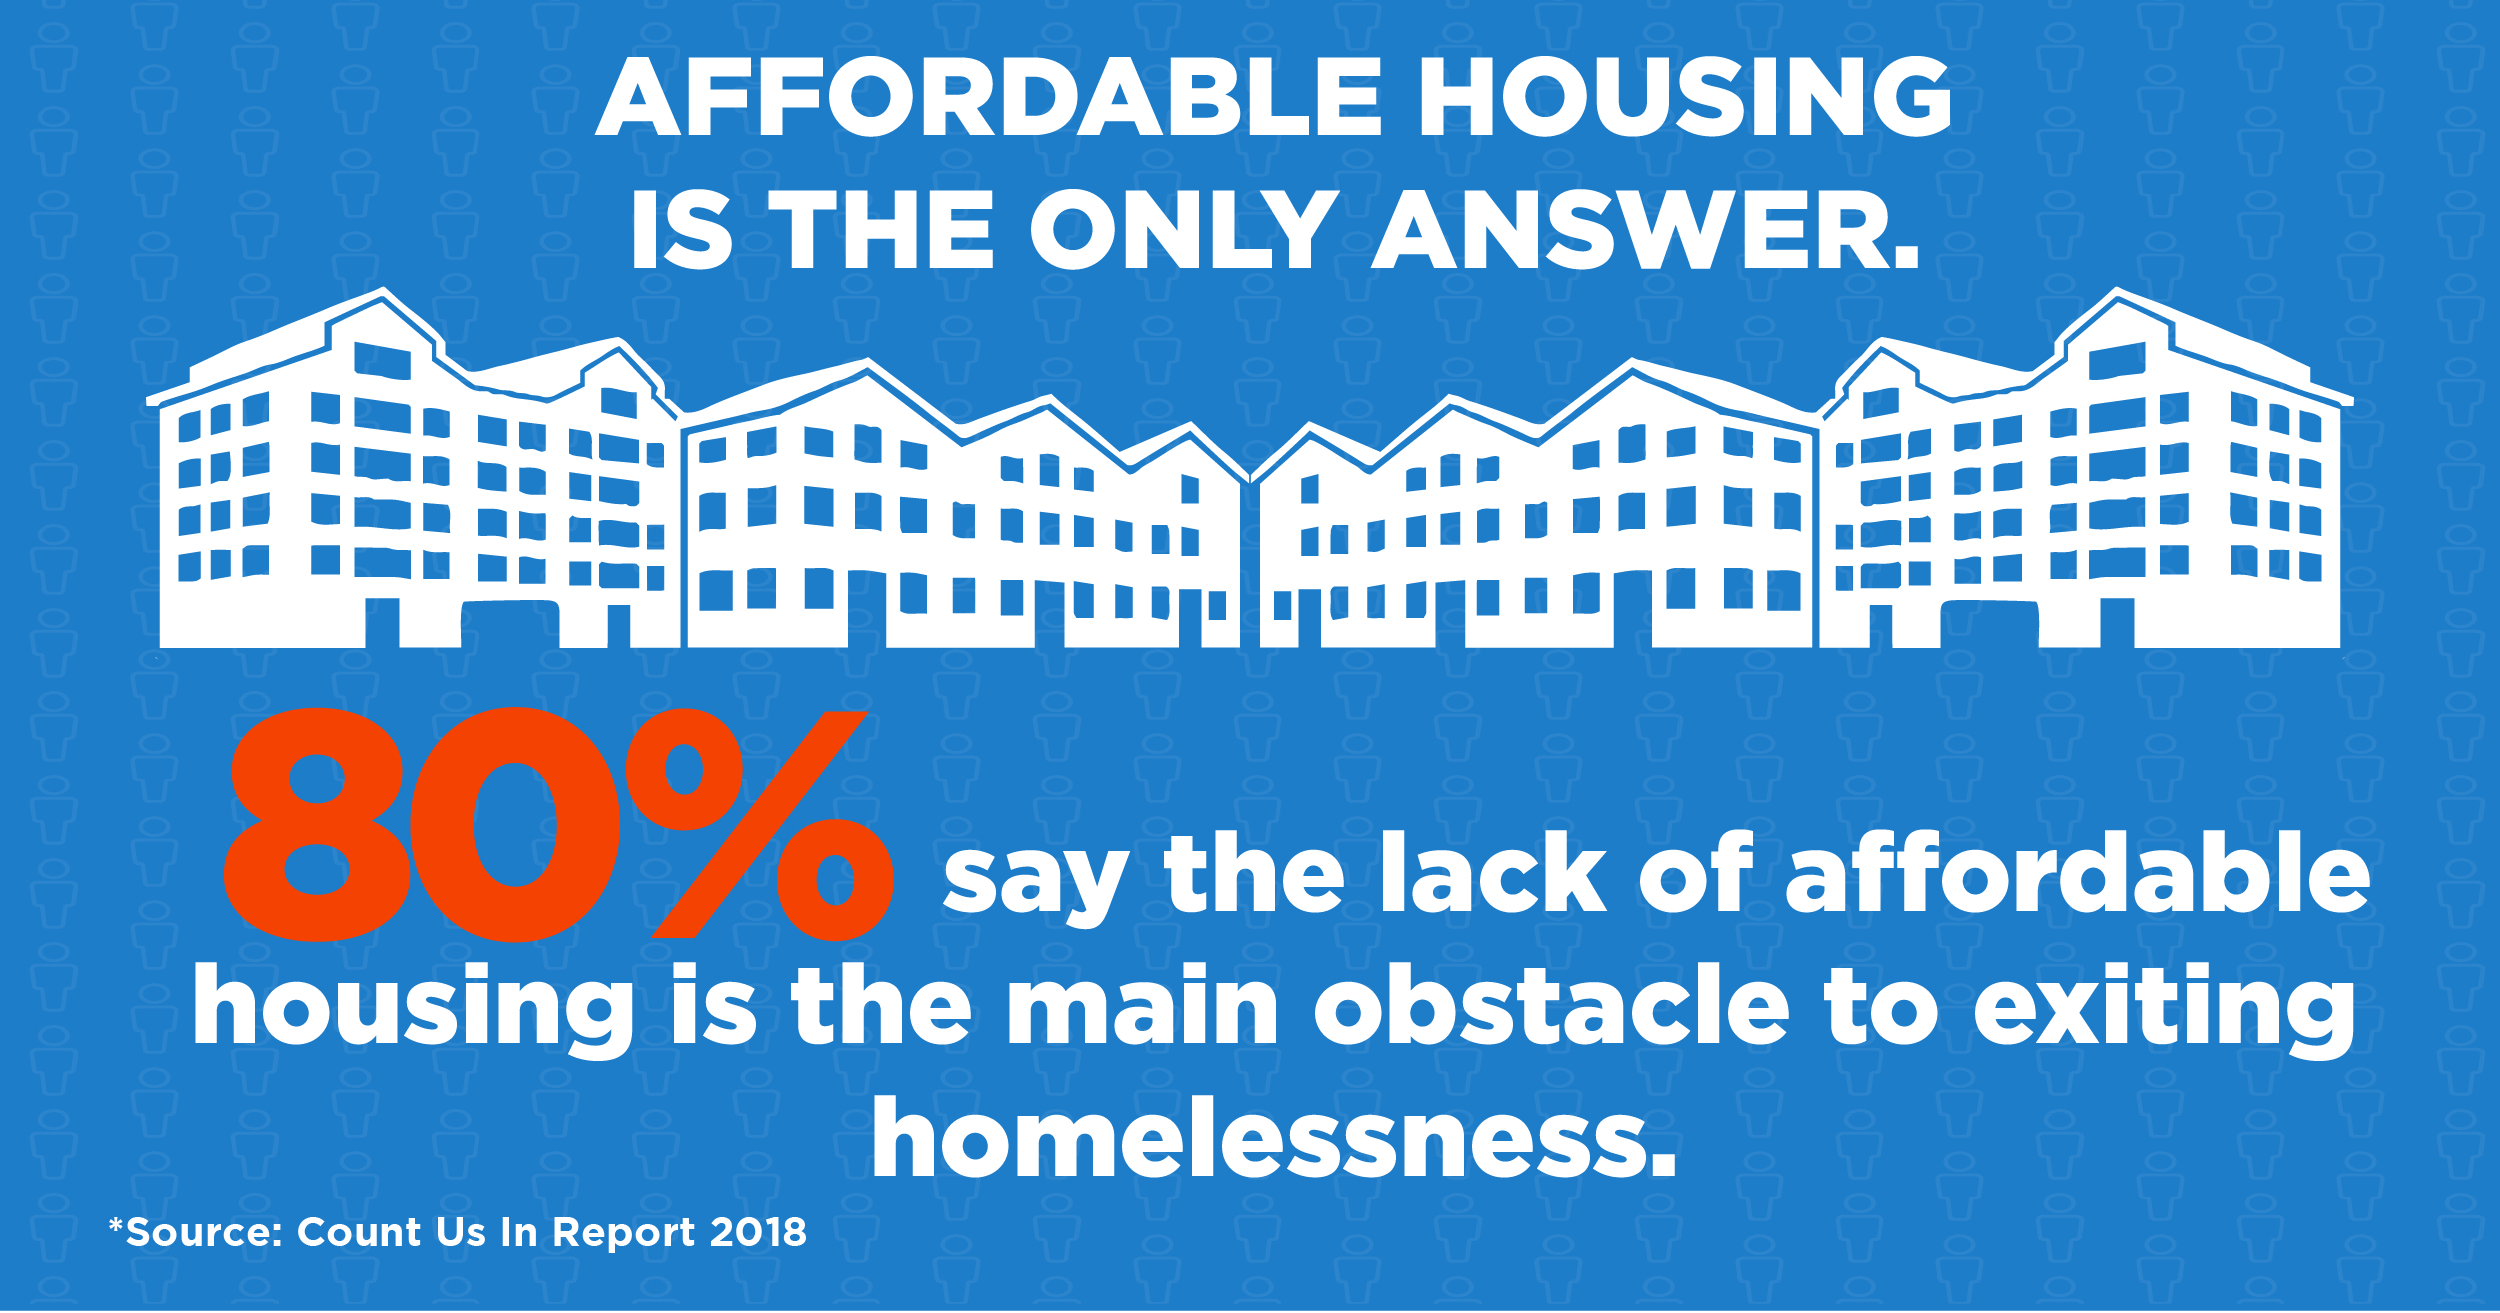 80% of people in homelessness say affordable housing the solution to ending their situation